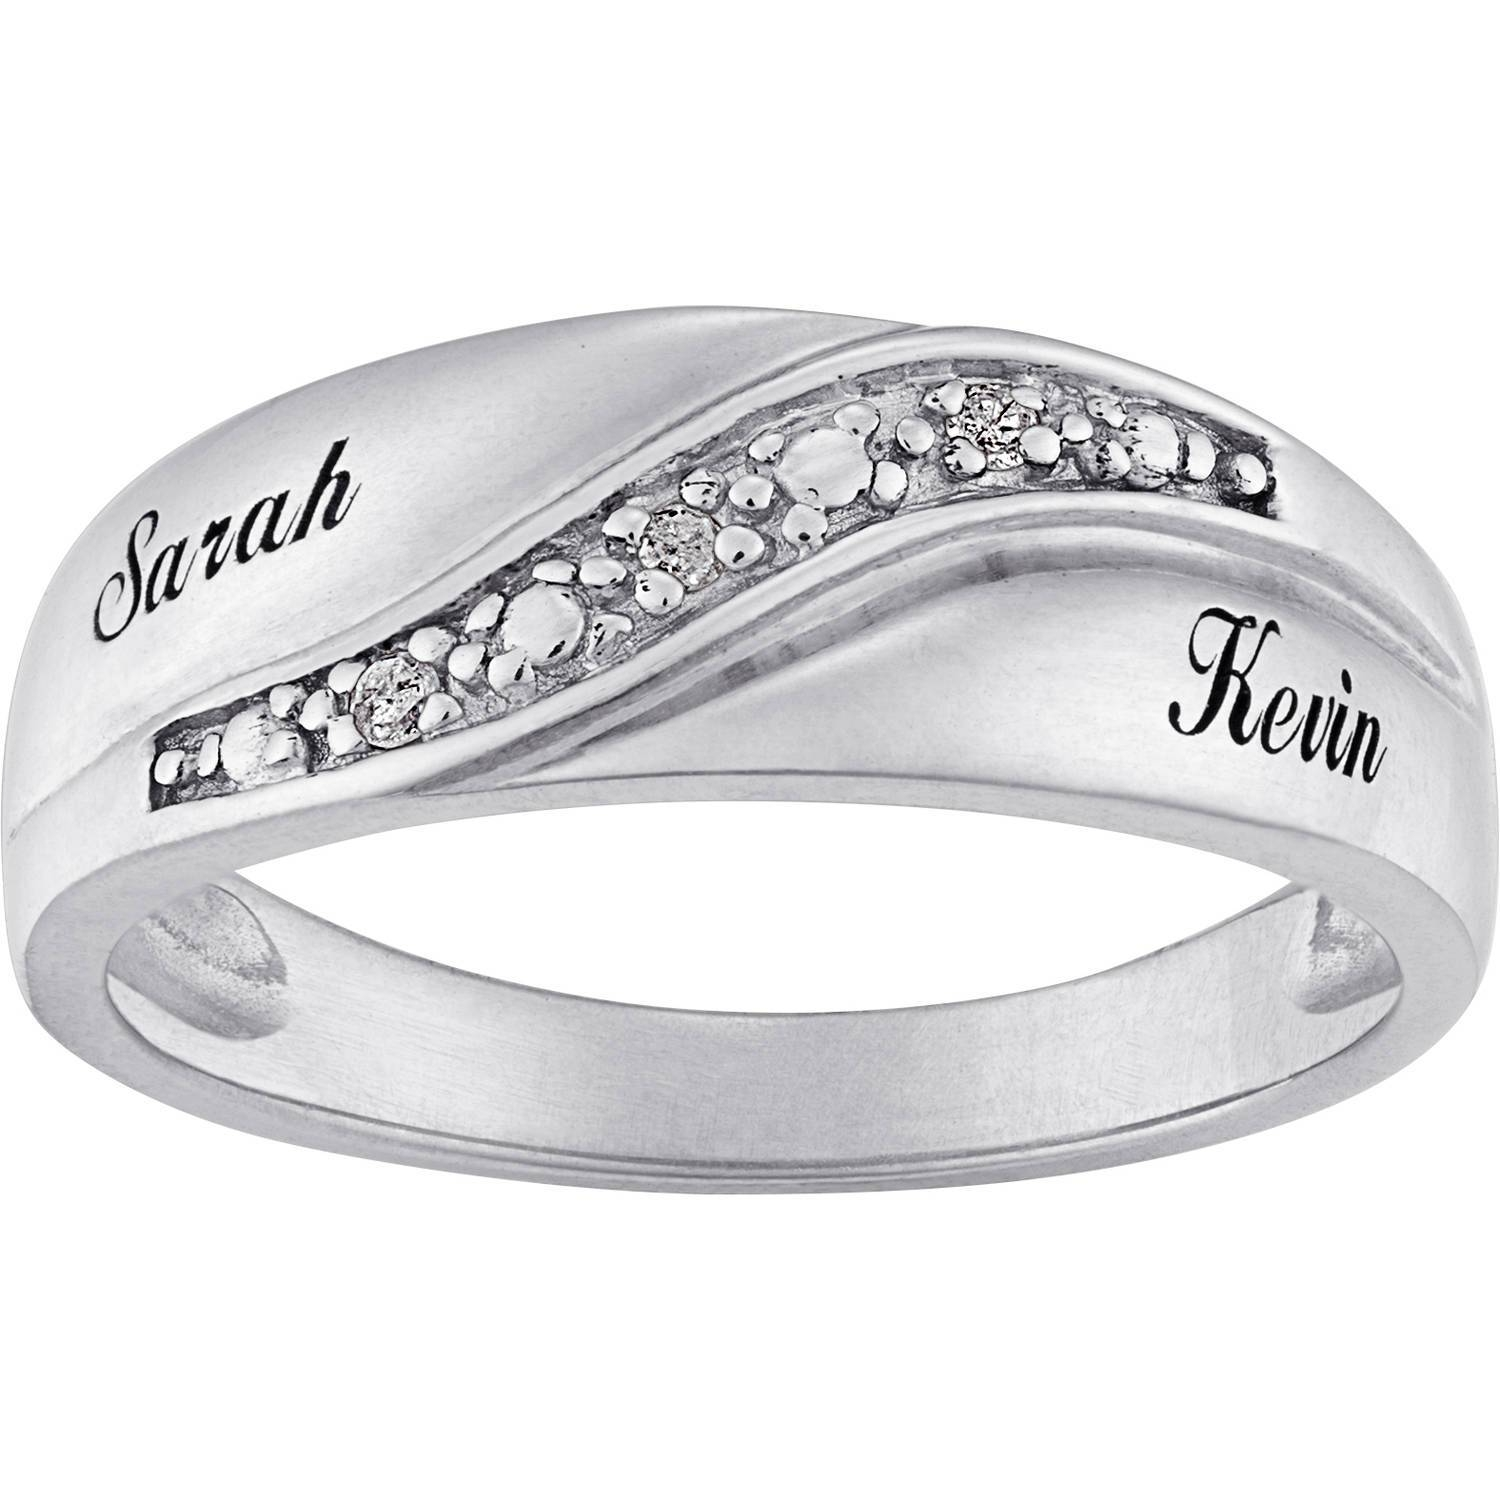 Personalized Sterling Silver Mens Diamond Accent Name Wedding Band Throughout Engraved Wedding Bands (View 8 of 15)